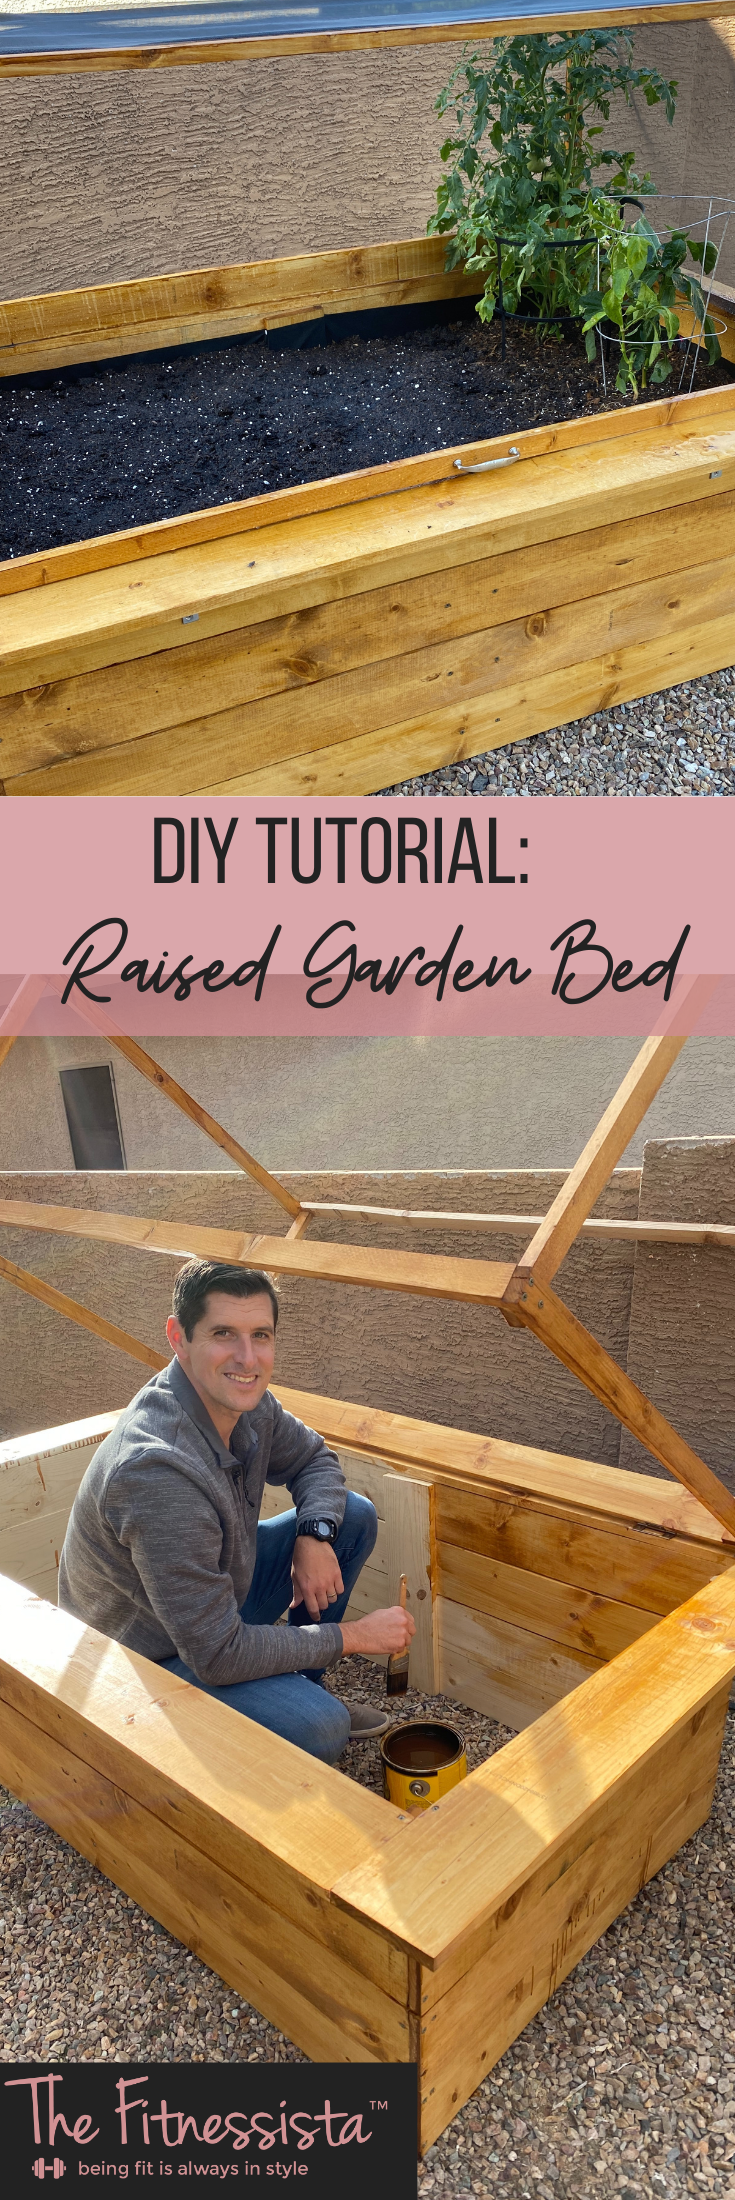 DIY raised garden bed!  Grow your own vegetables and herbs at home.  fitnessista.com